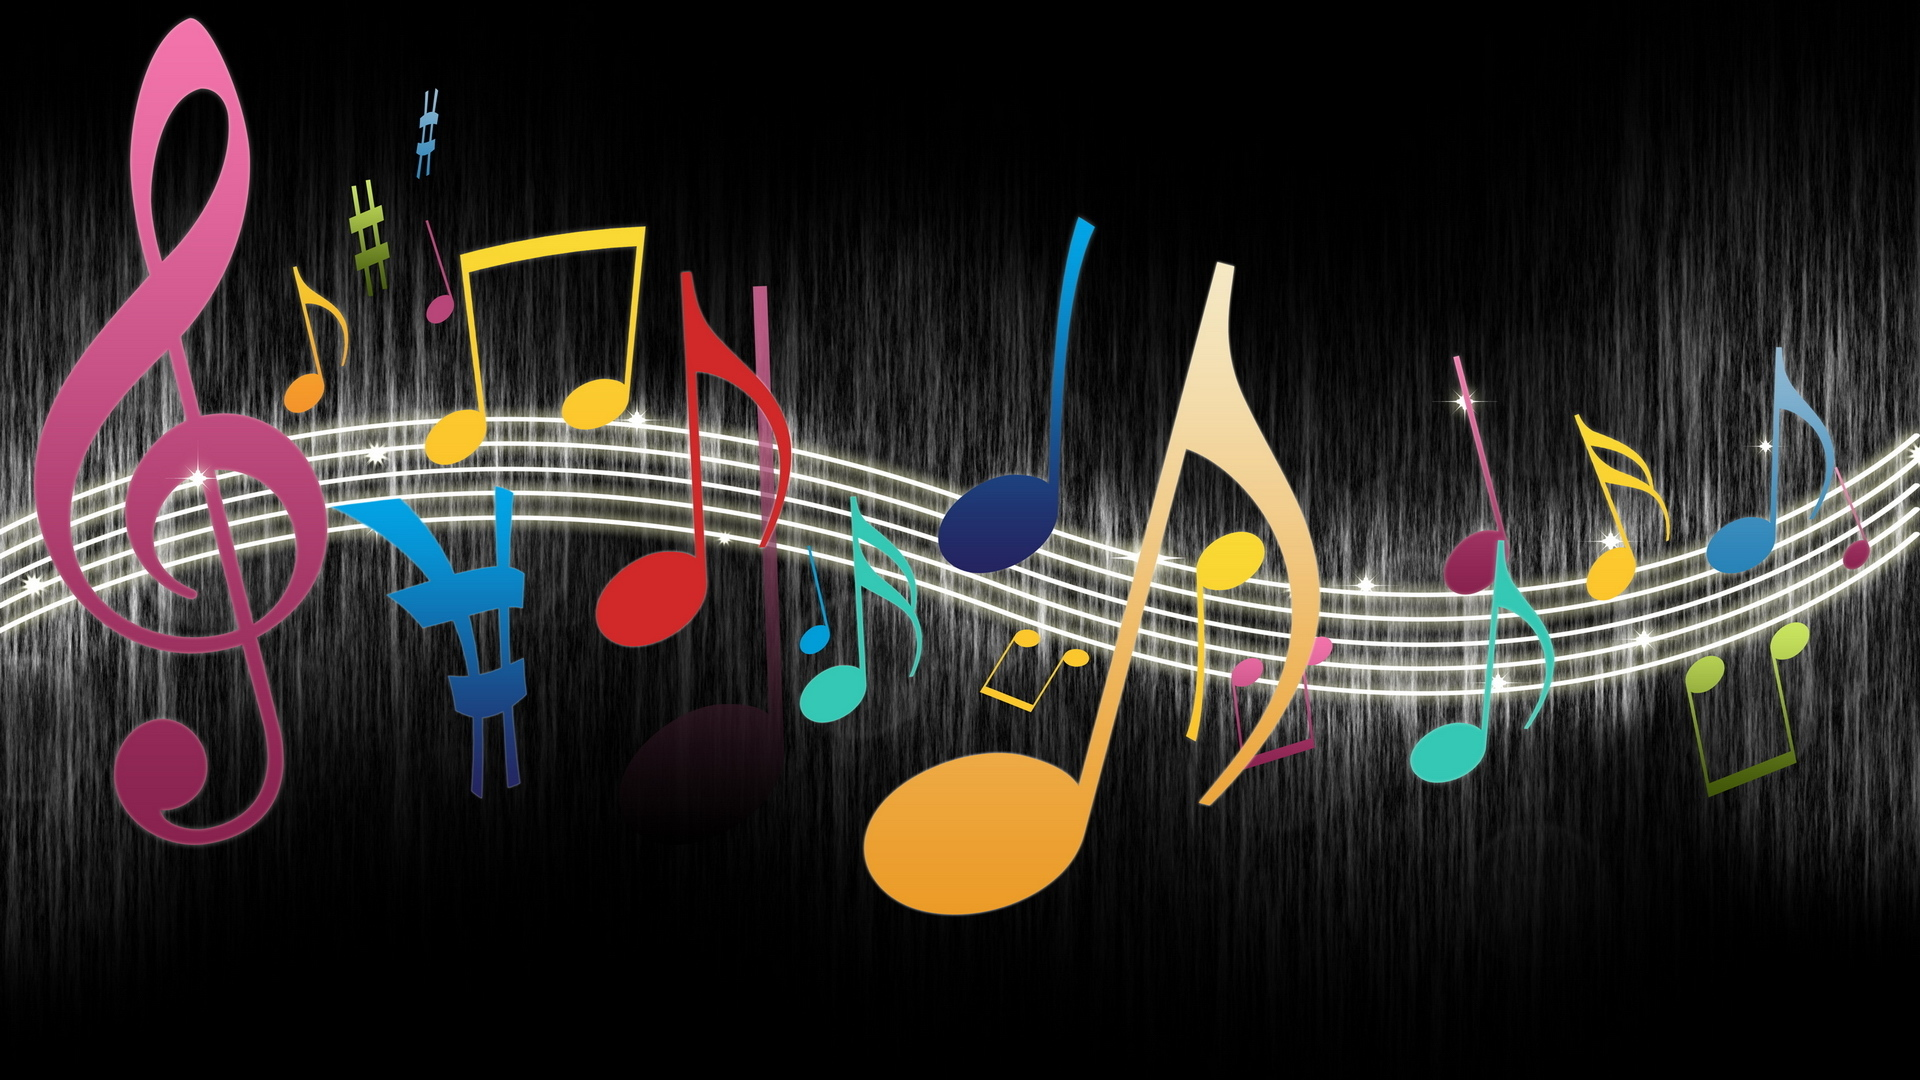 Music Wallpapers Hd Background Wallpaper 29 Thumb